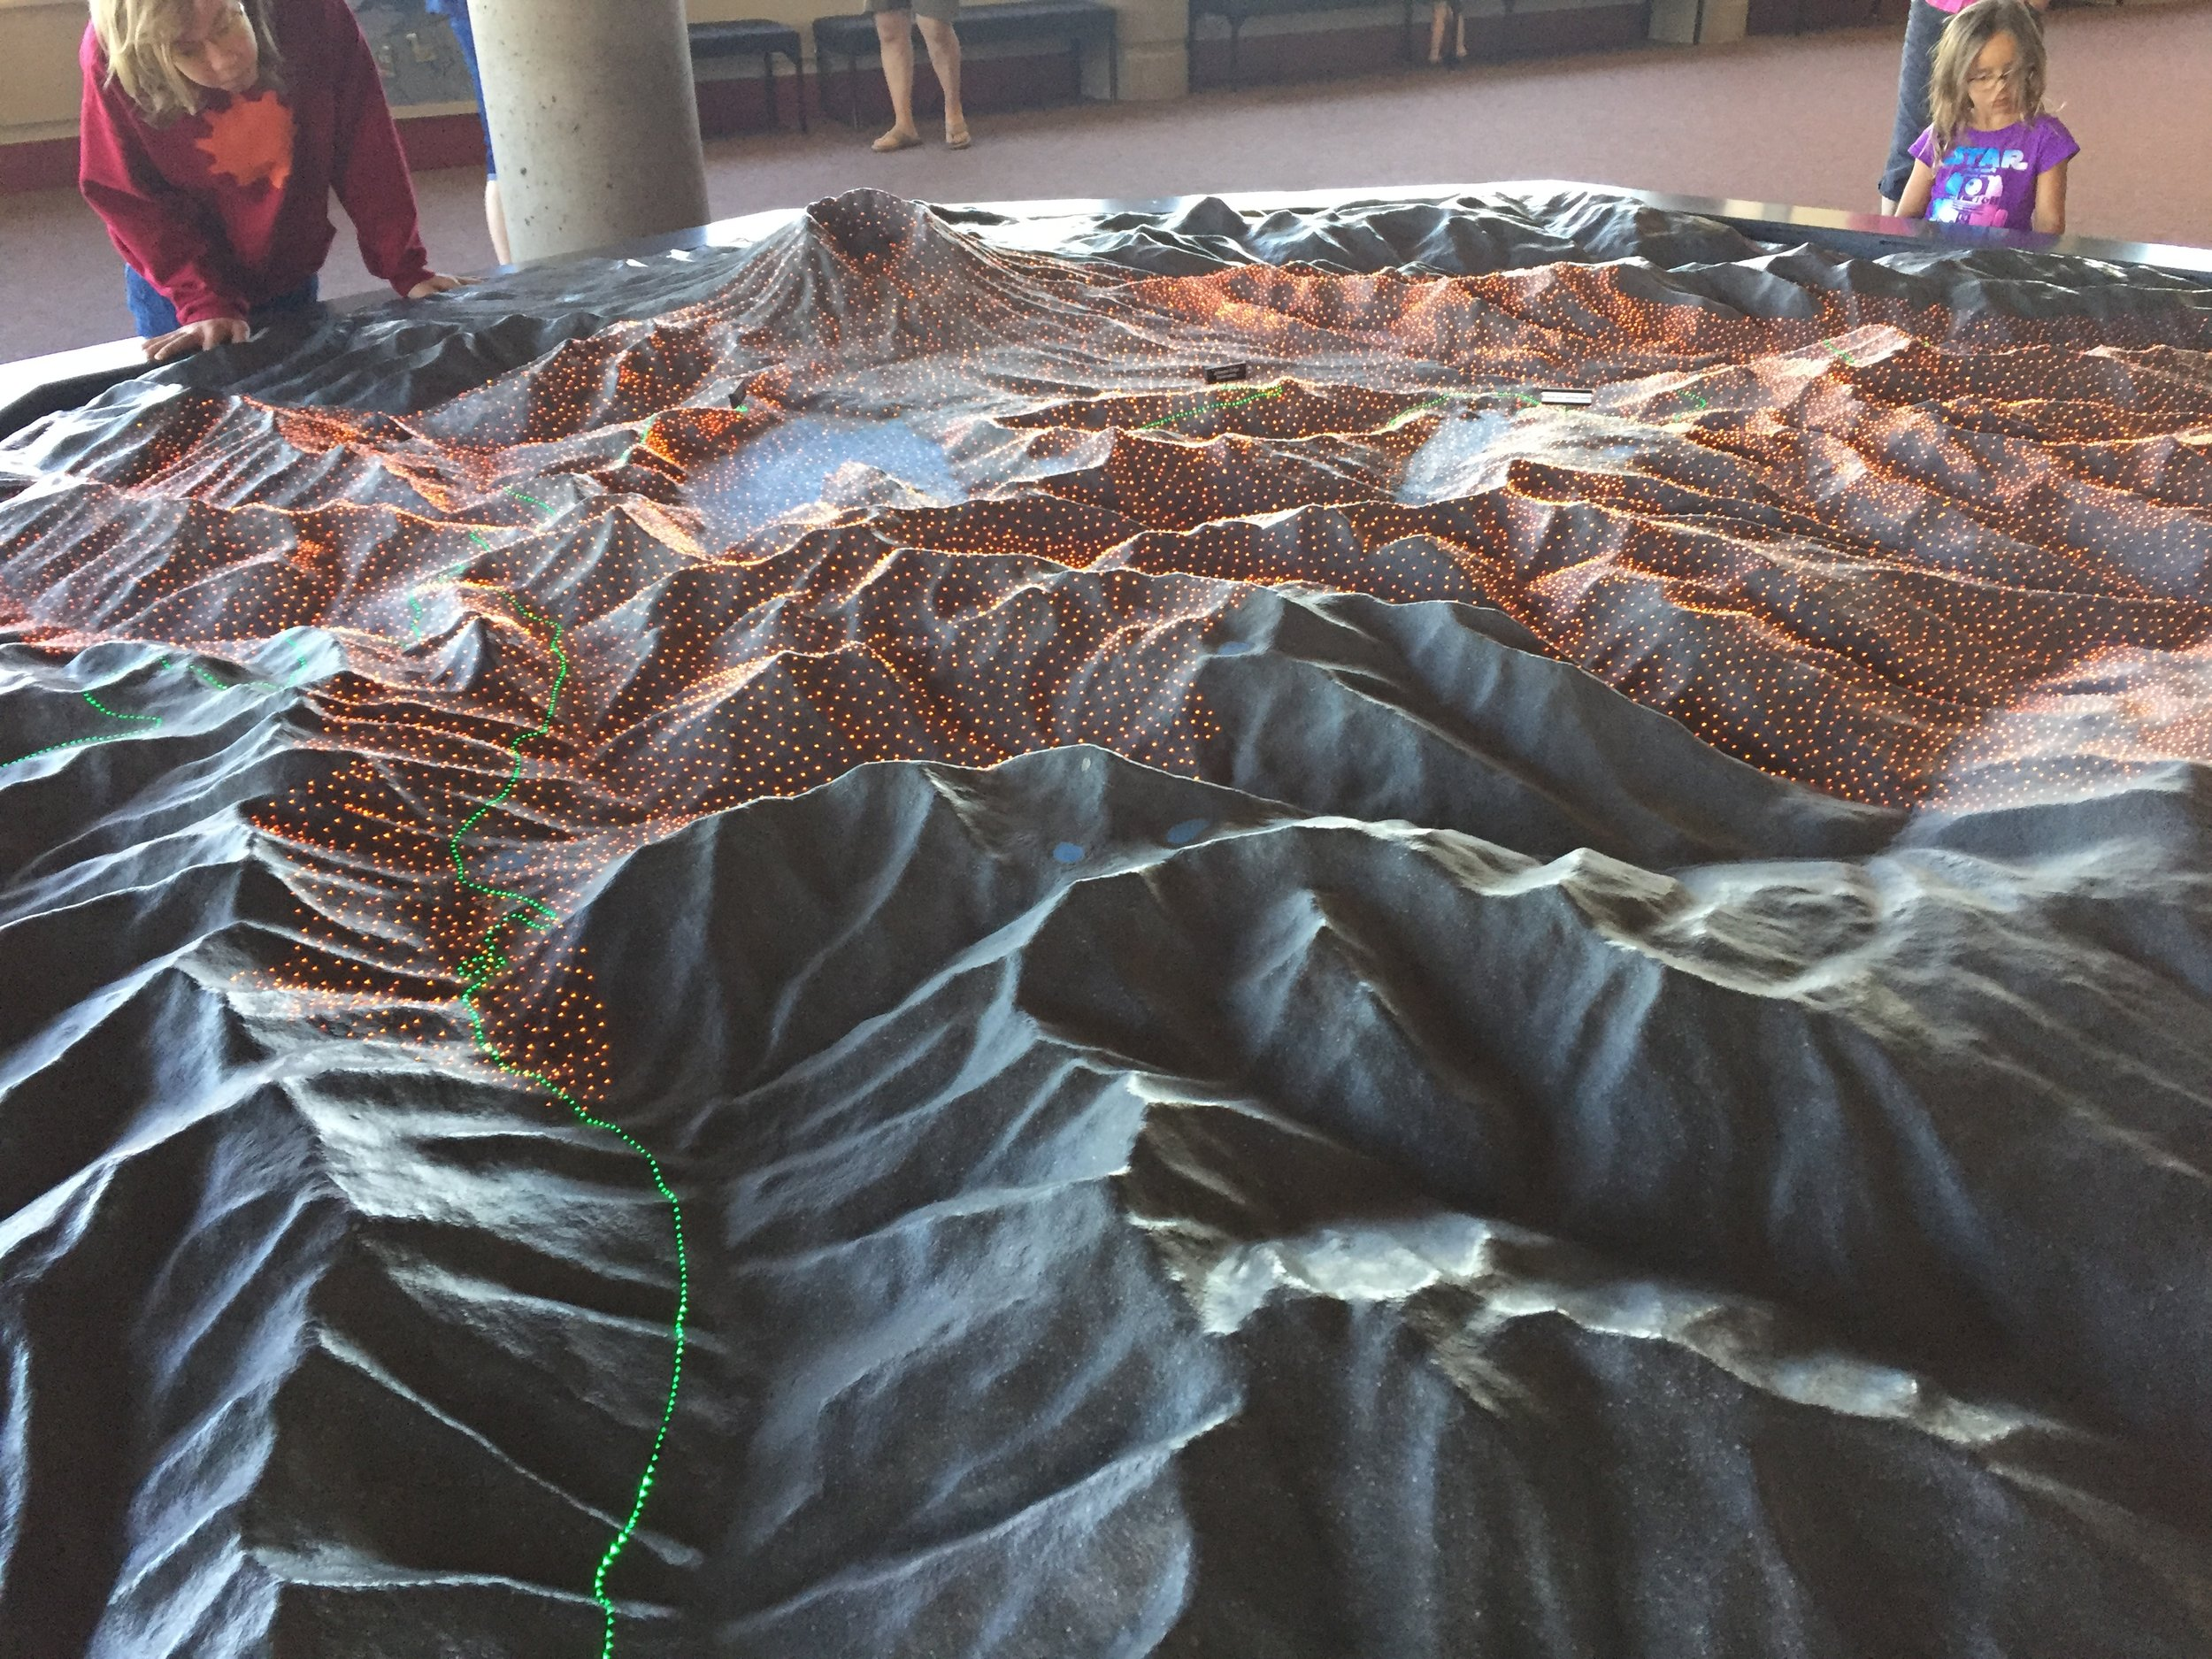 The model at the information centre, showing how far the pyroclastic flow reached: 15 miles!